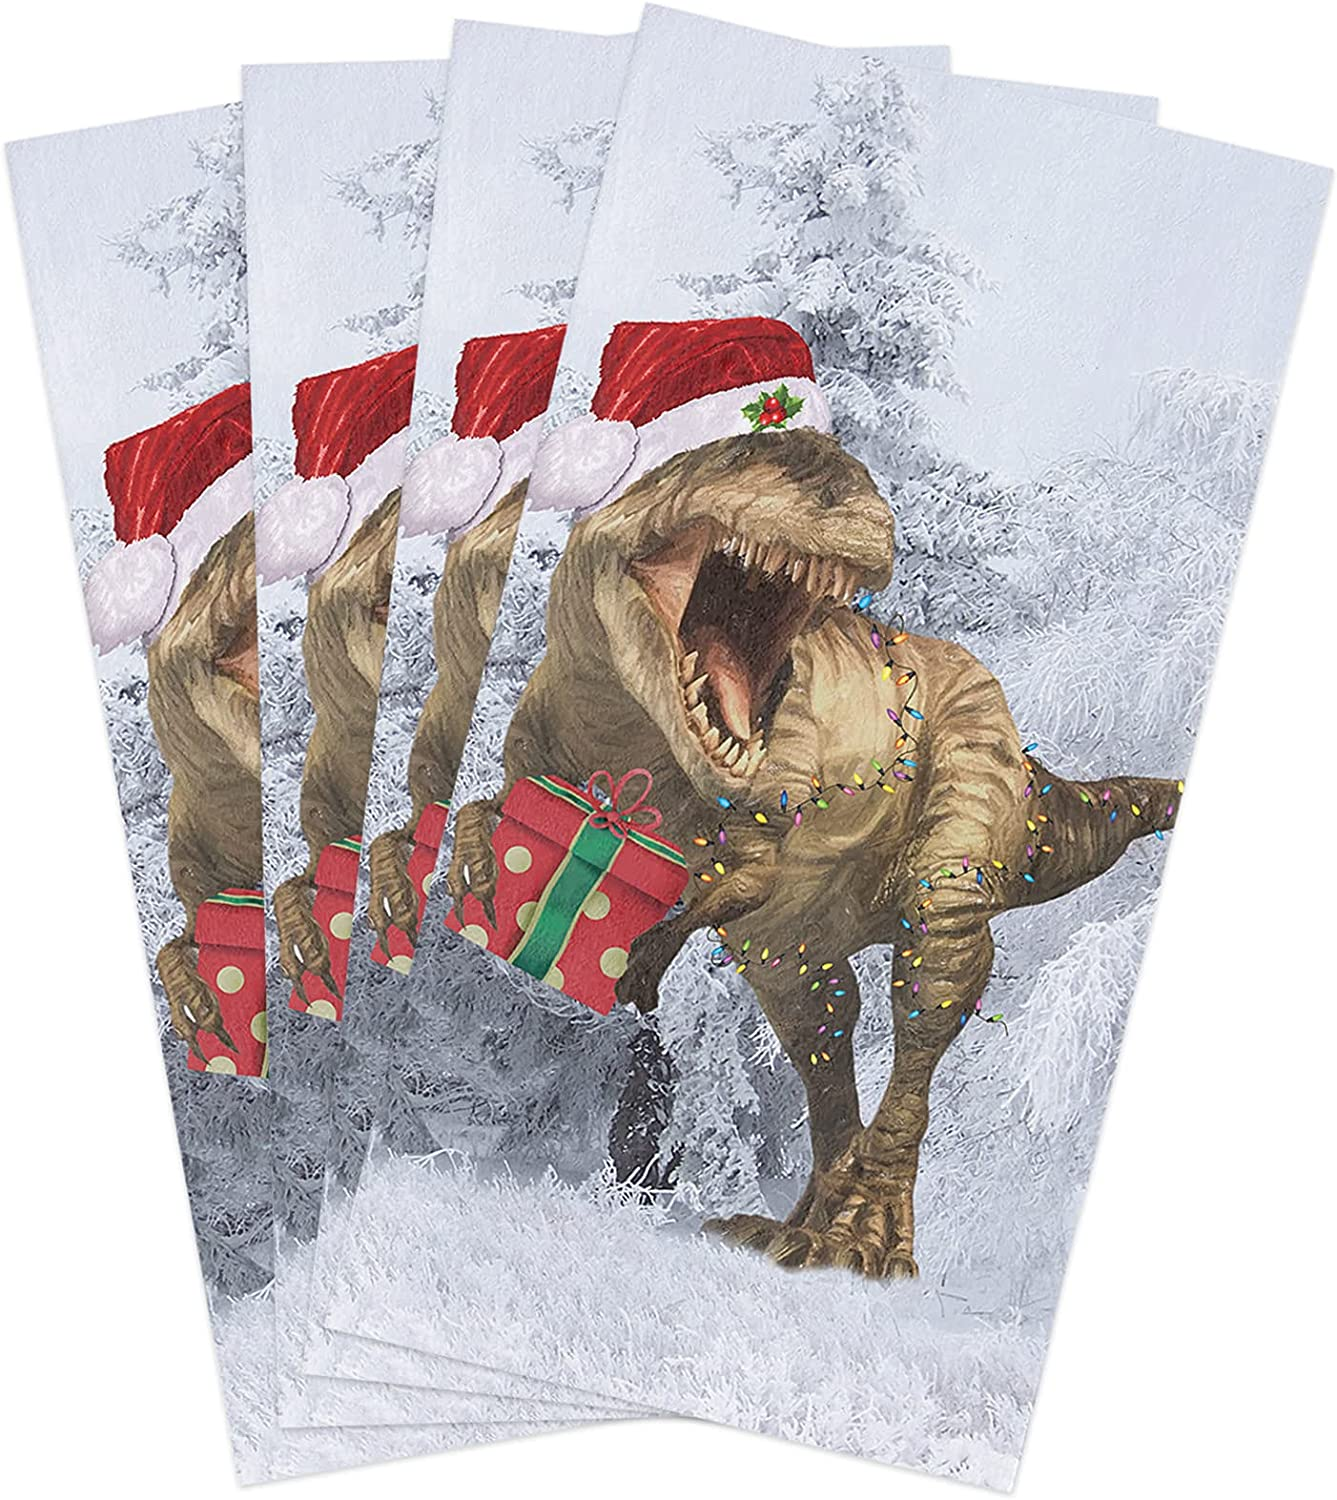 New item Max 67% OFF Microfiber Soft Kitchen Dish Towels Dinosaur Christmas Pack 4 of